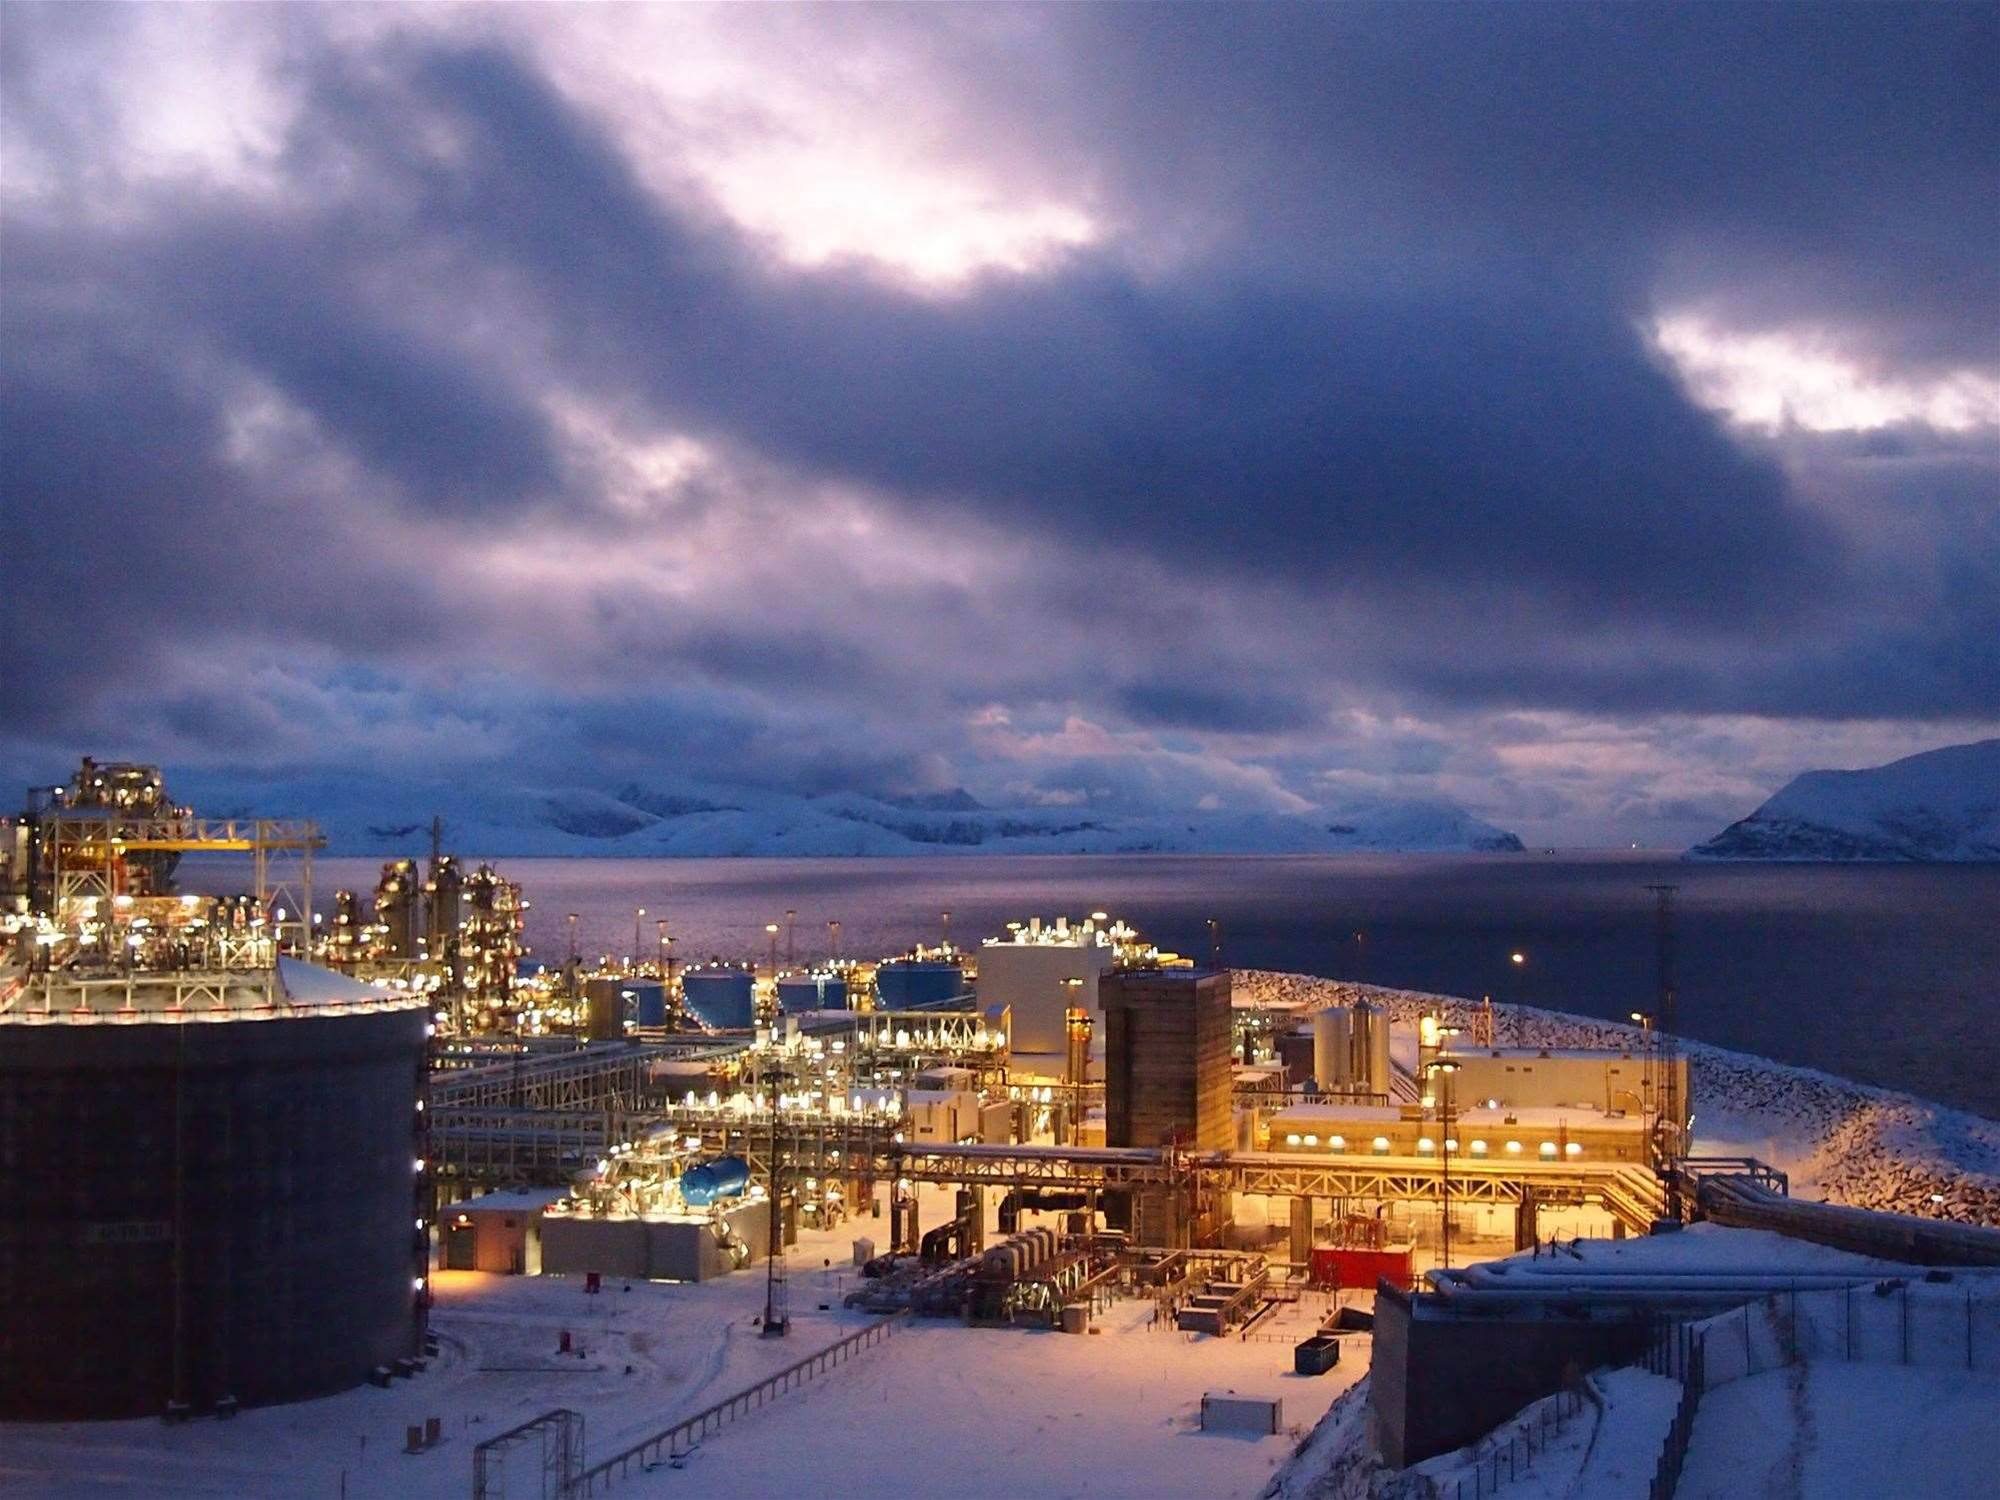 Arctic Report: How This Small Fishing Village Turned Into a Fossil Fuel Boomtown